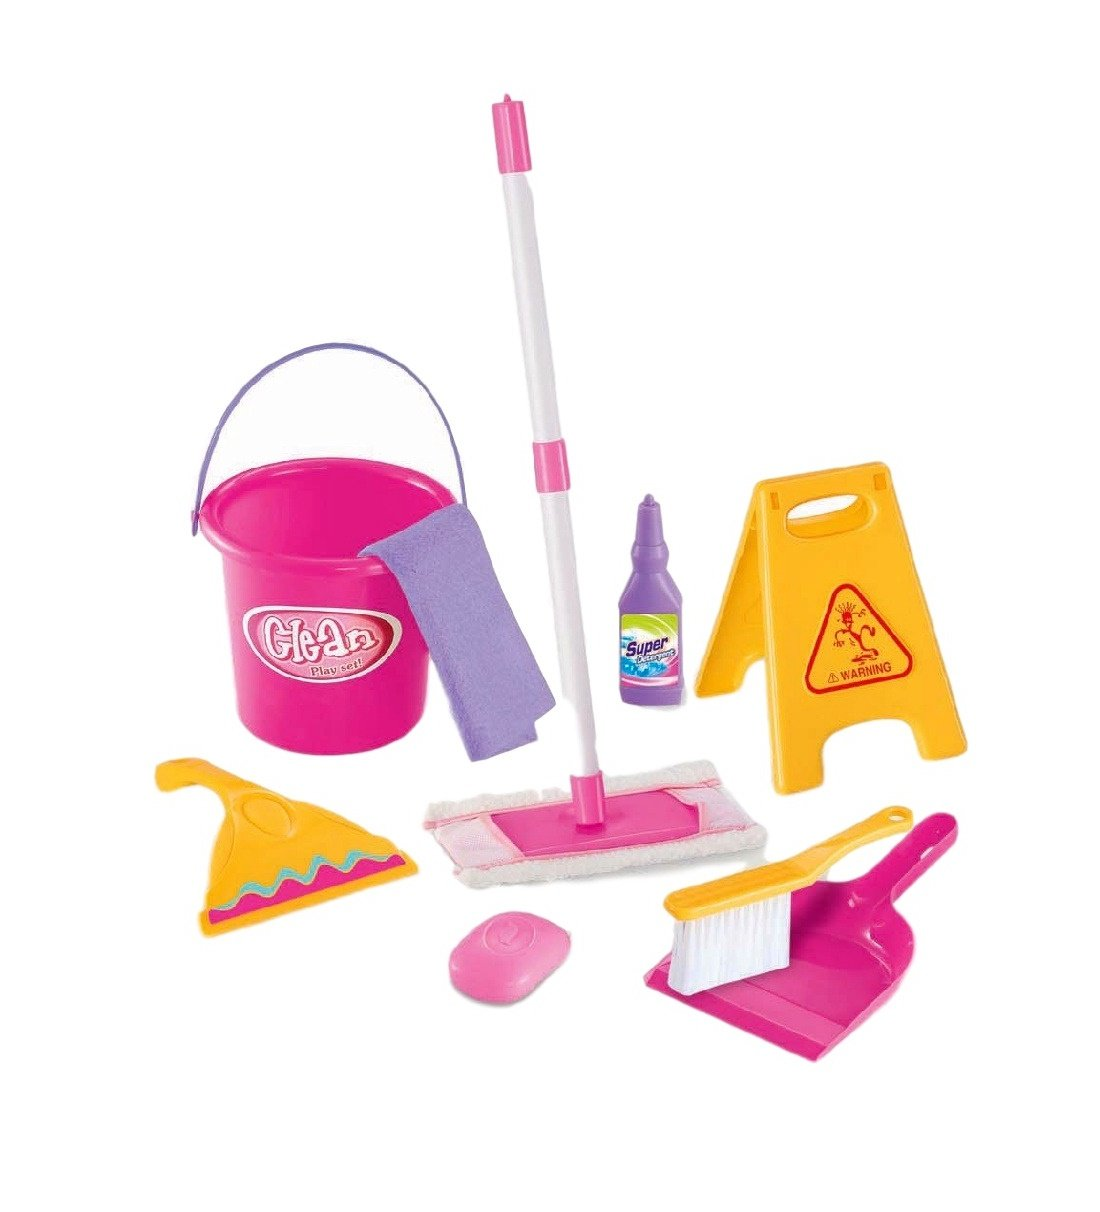 Little Treasures Little Helper 9 piece pretend and play Cleaning Play Set with floor mop, squeegee, soap, detergent, bucket, dustpan and brush, towel and wet floor warning sign